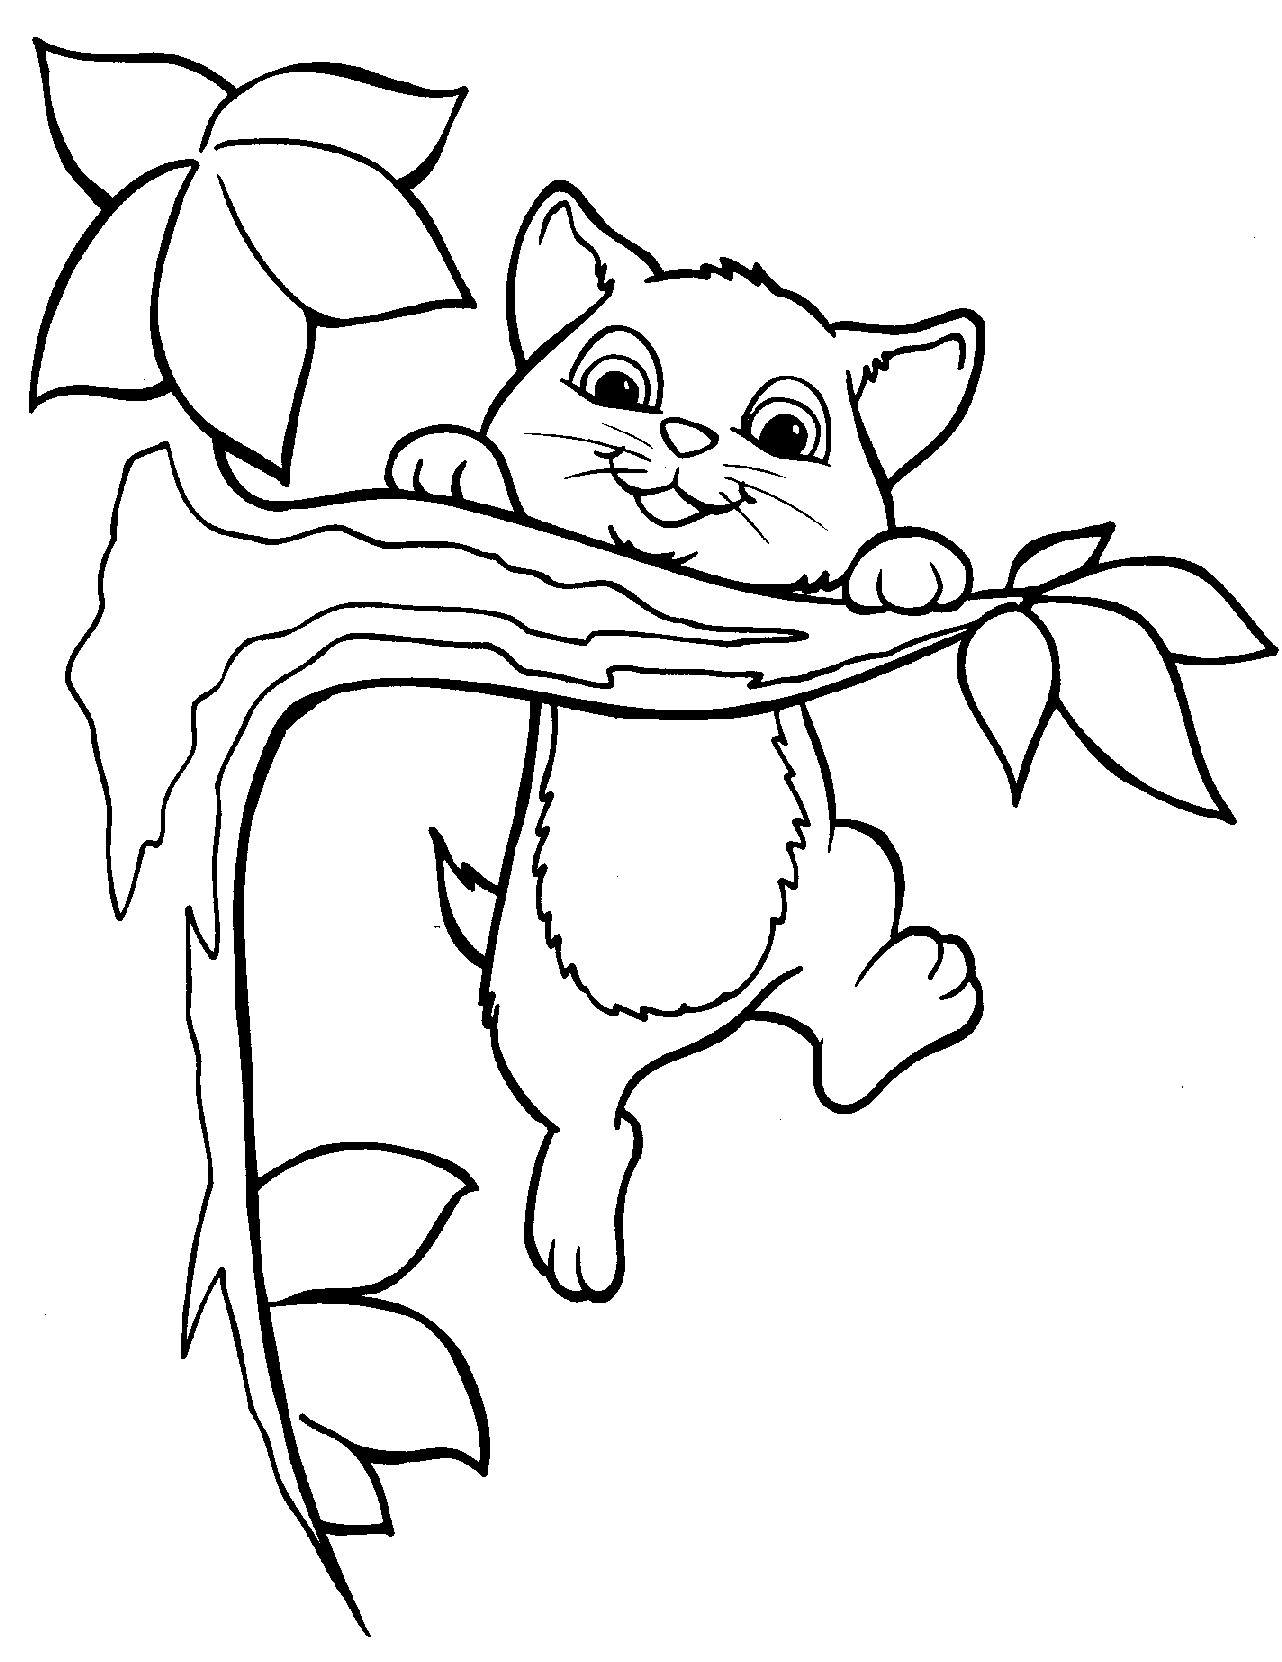 1282x1662 Useful Crossbow Coloring Pages Page Norman Archer